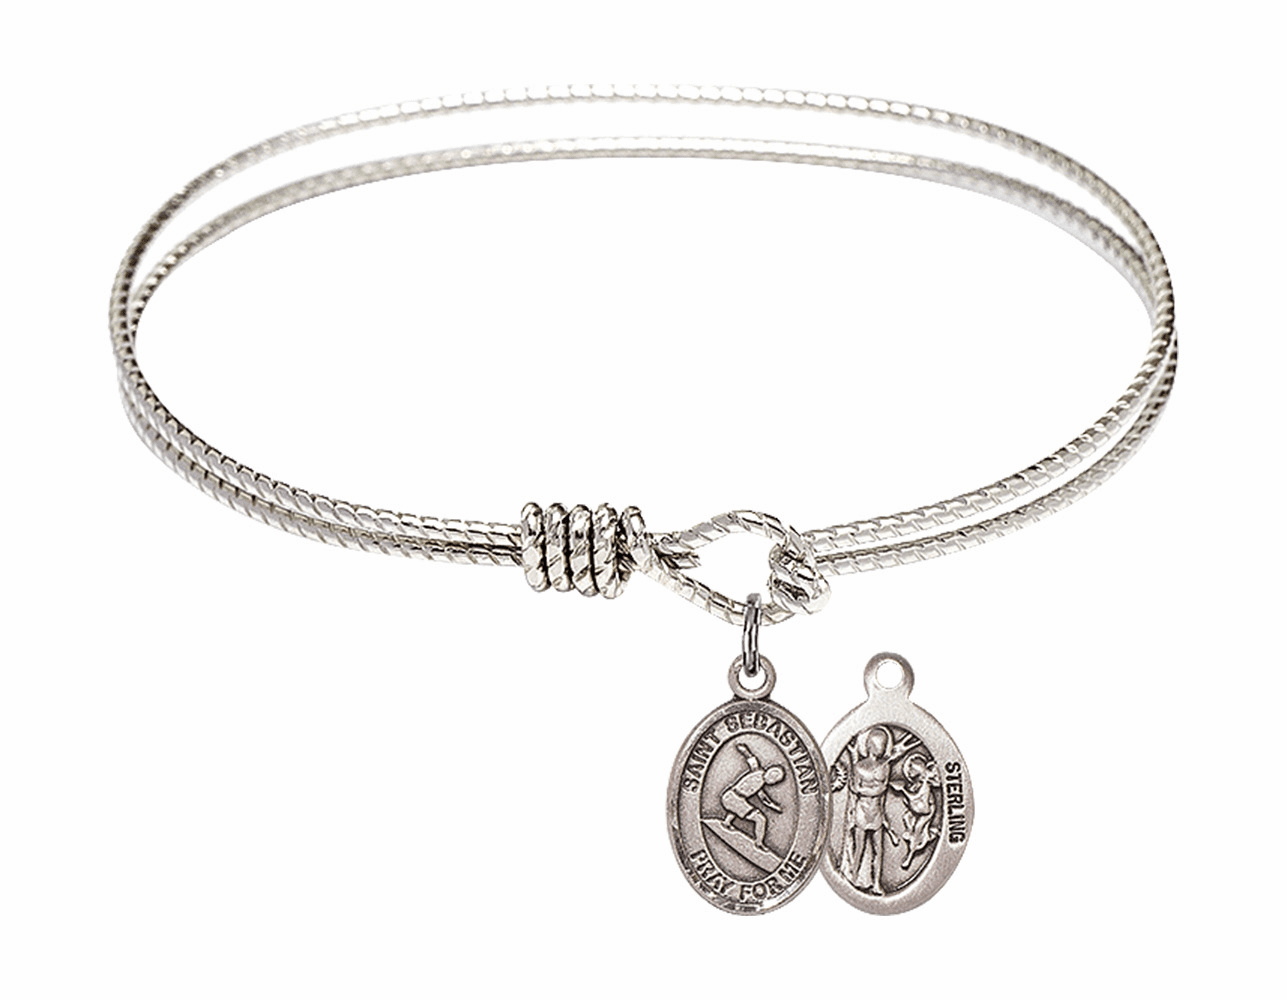 Twist Round Eye Hook St Sebastian Surfing Bangle Charm Bracelet by Bliss